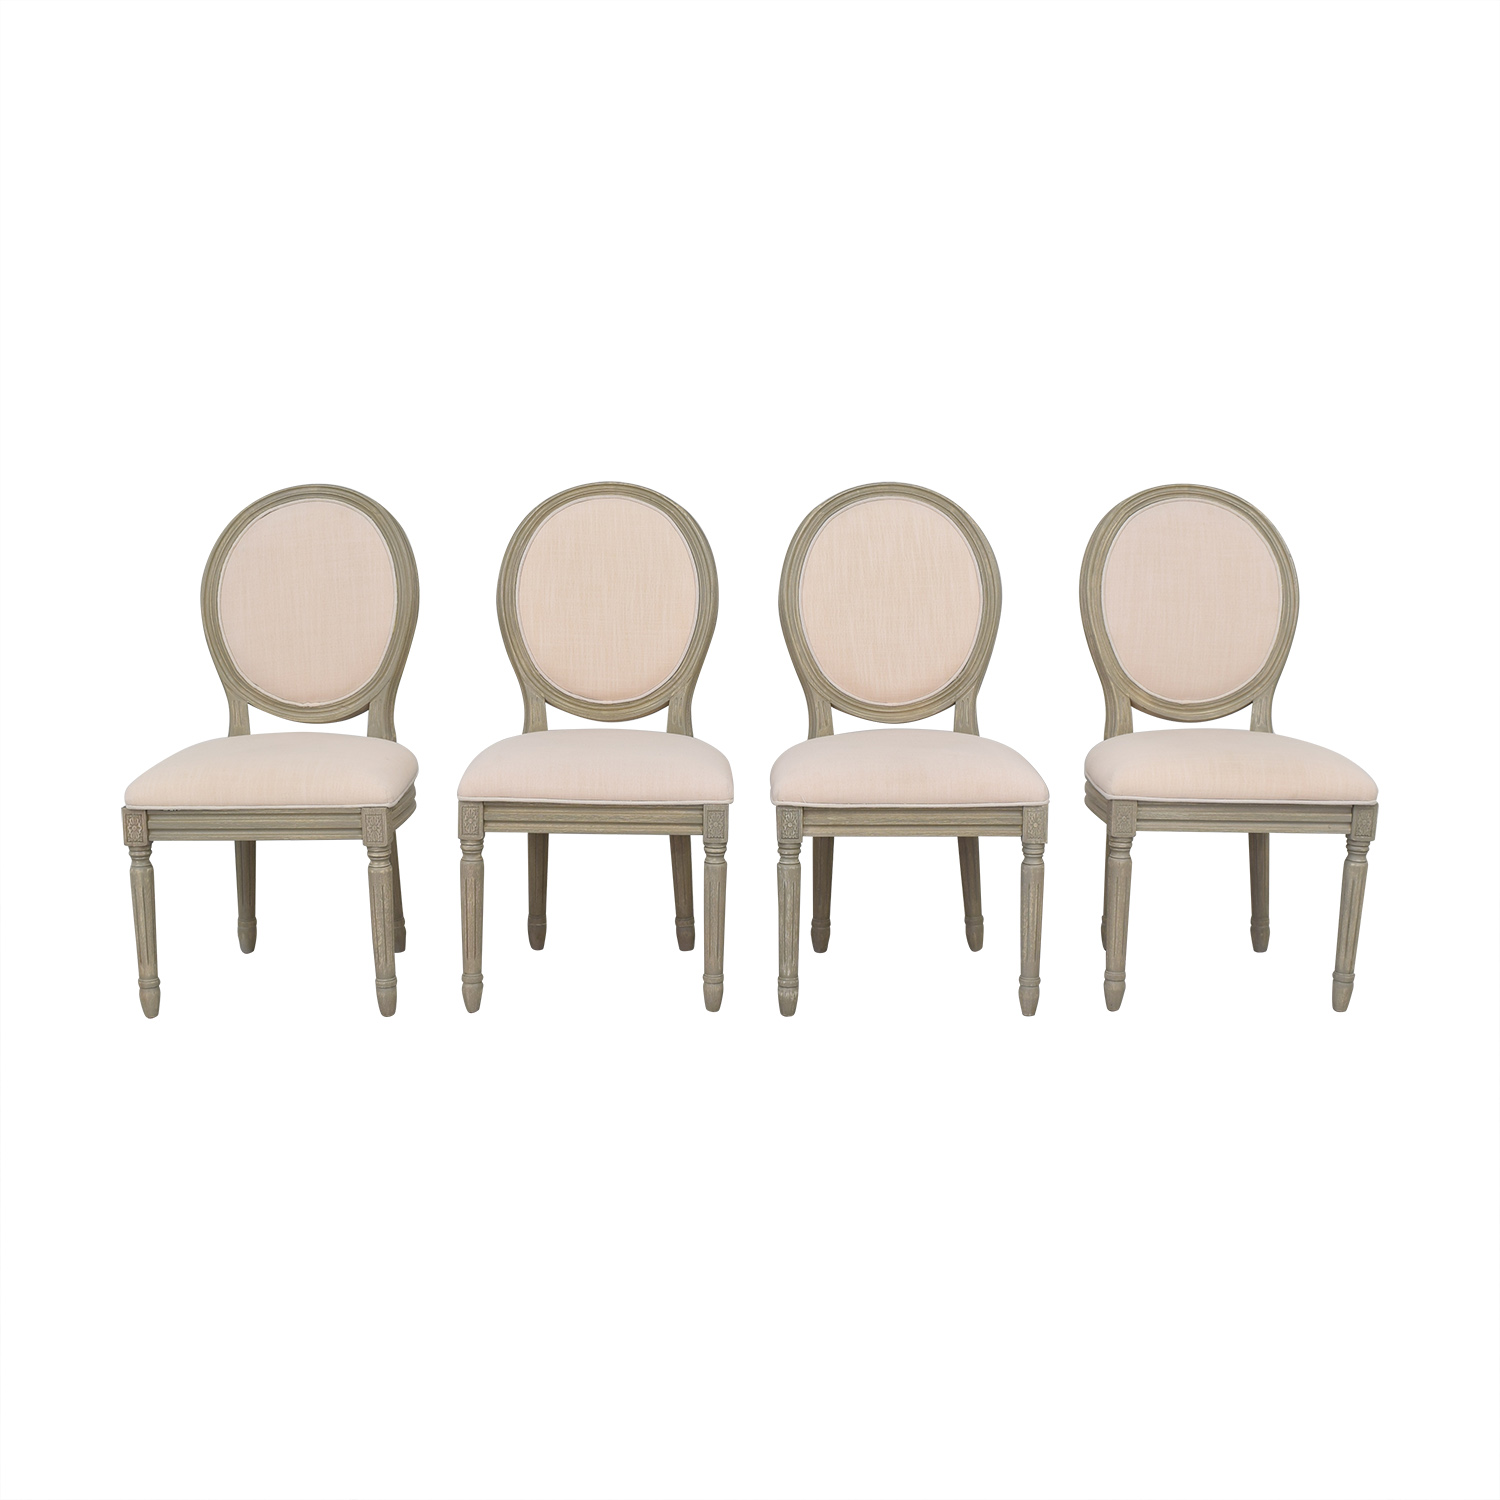 Joss & Main Joss & Main Chestertown Upholstered Dining Chairs discount